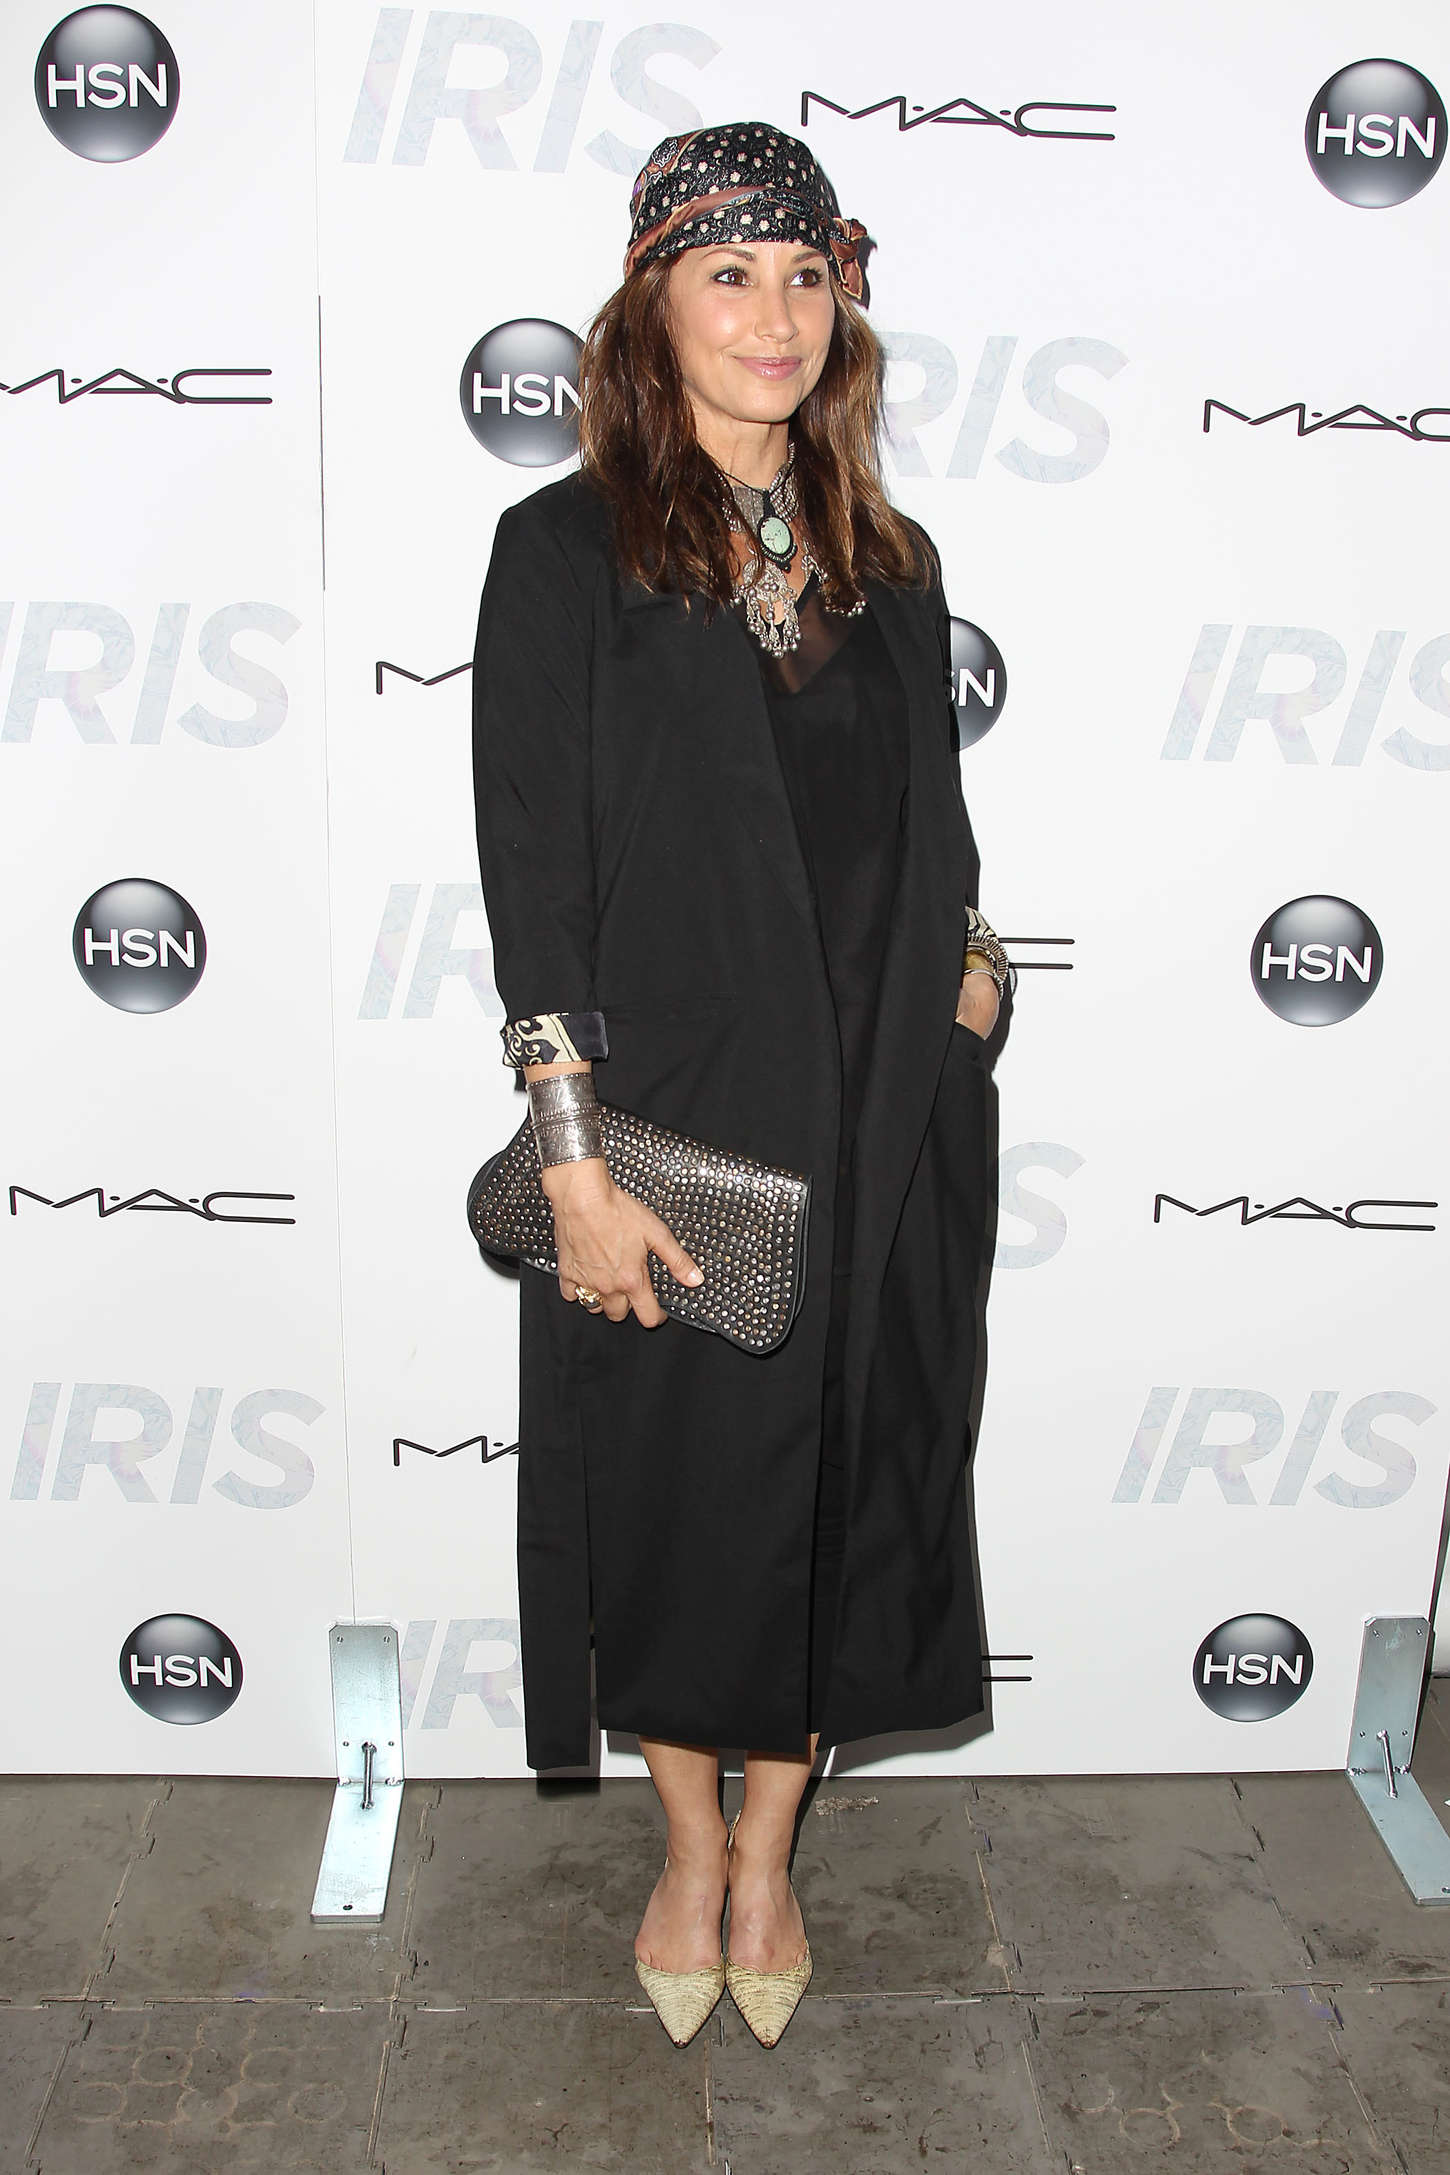 Gina Gershon Iris Premiere in New York